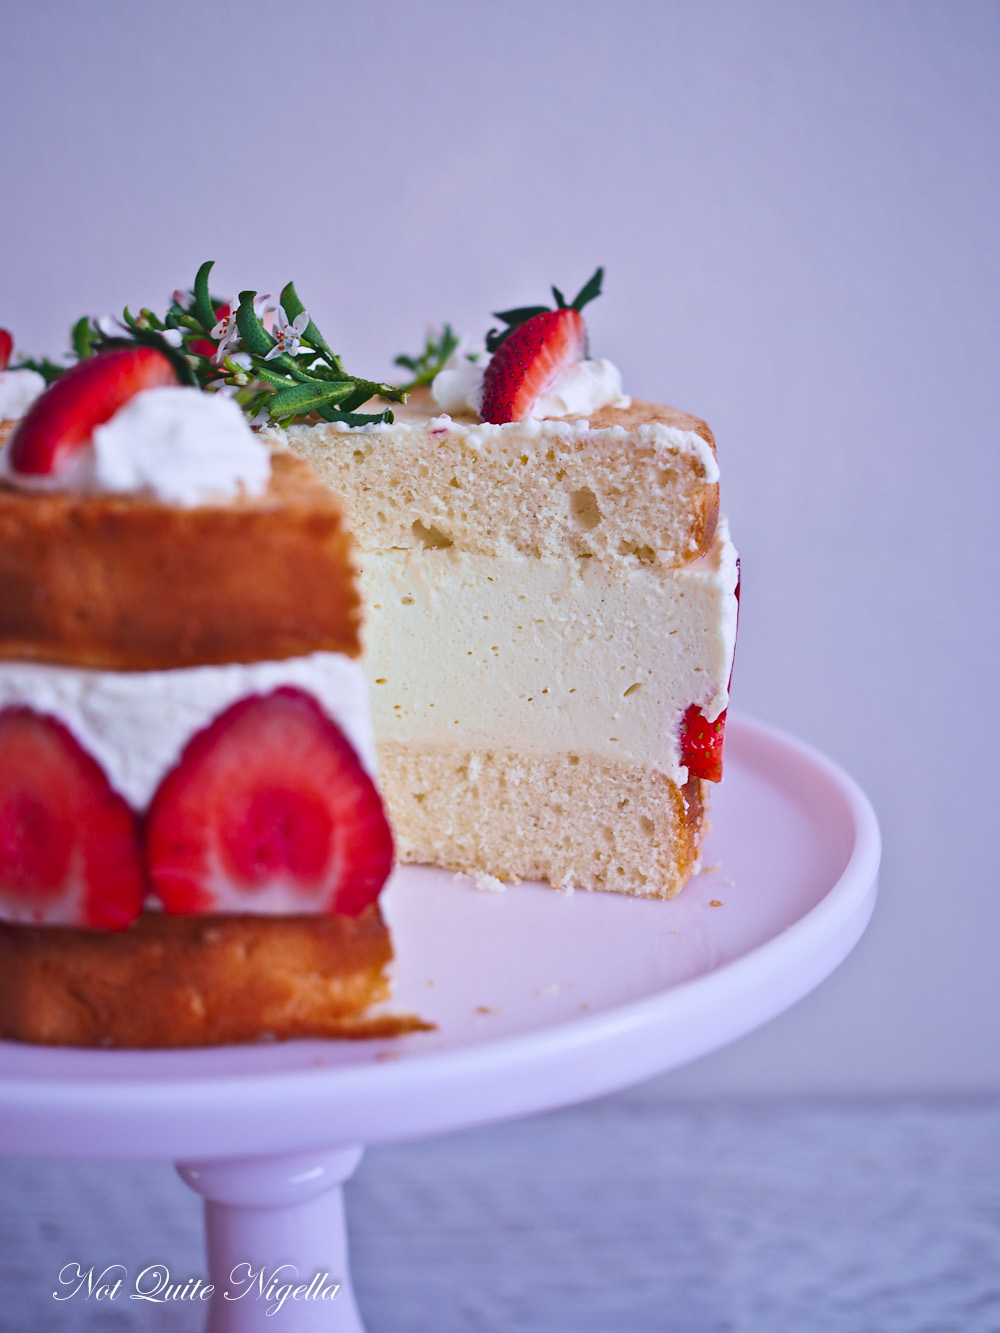 Strawberry Yogurt Cheesecake